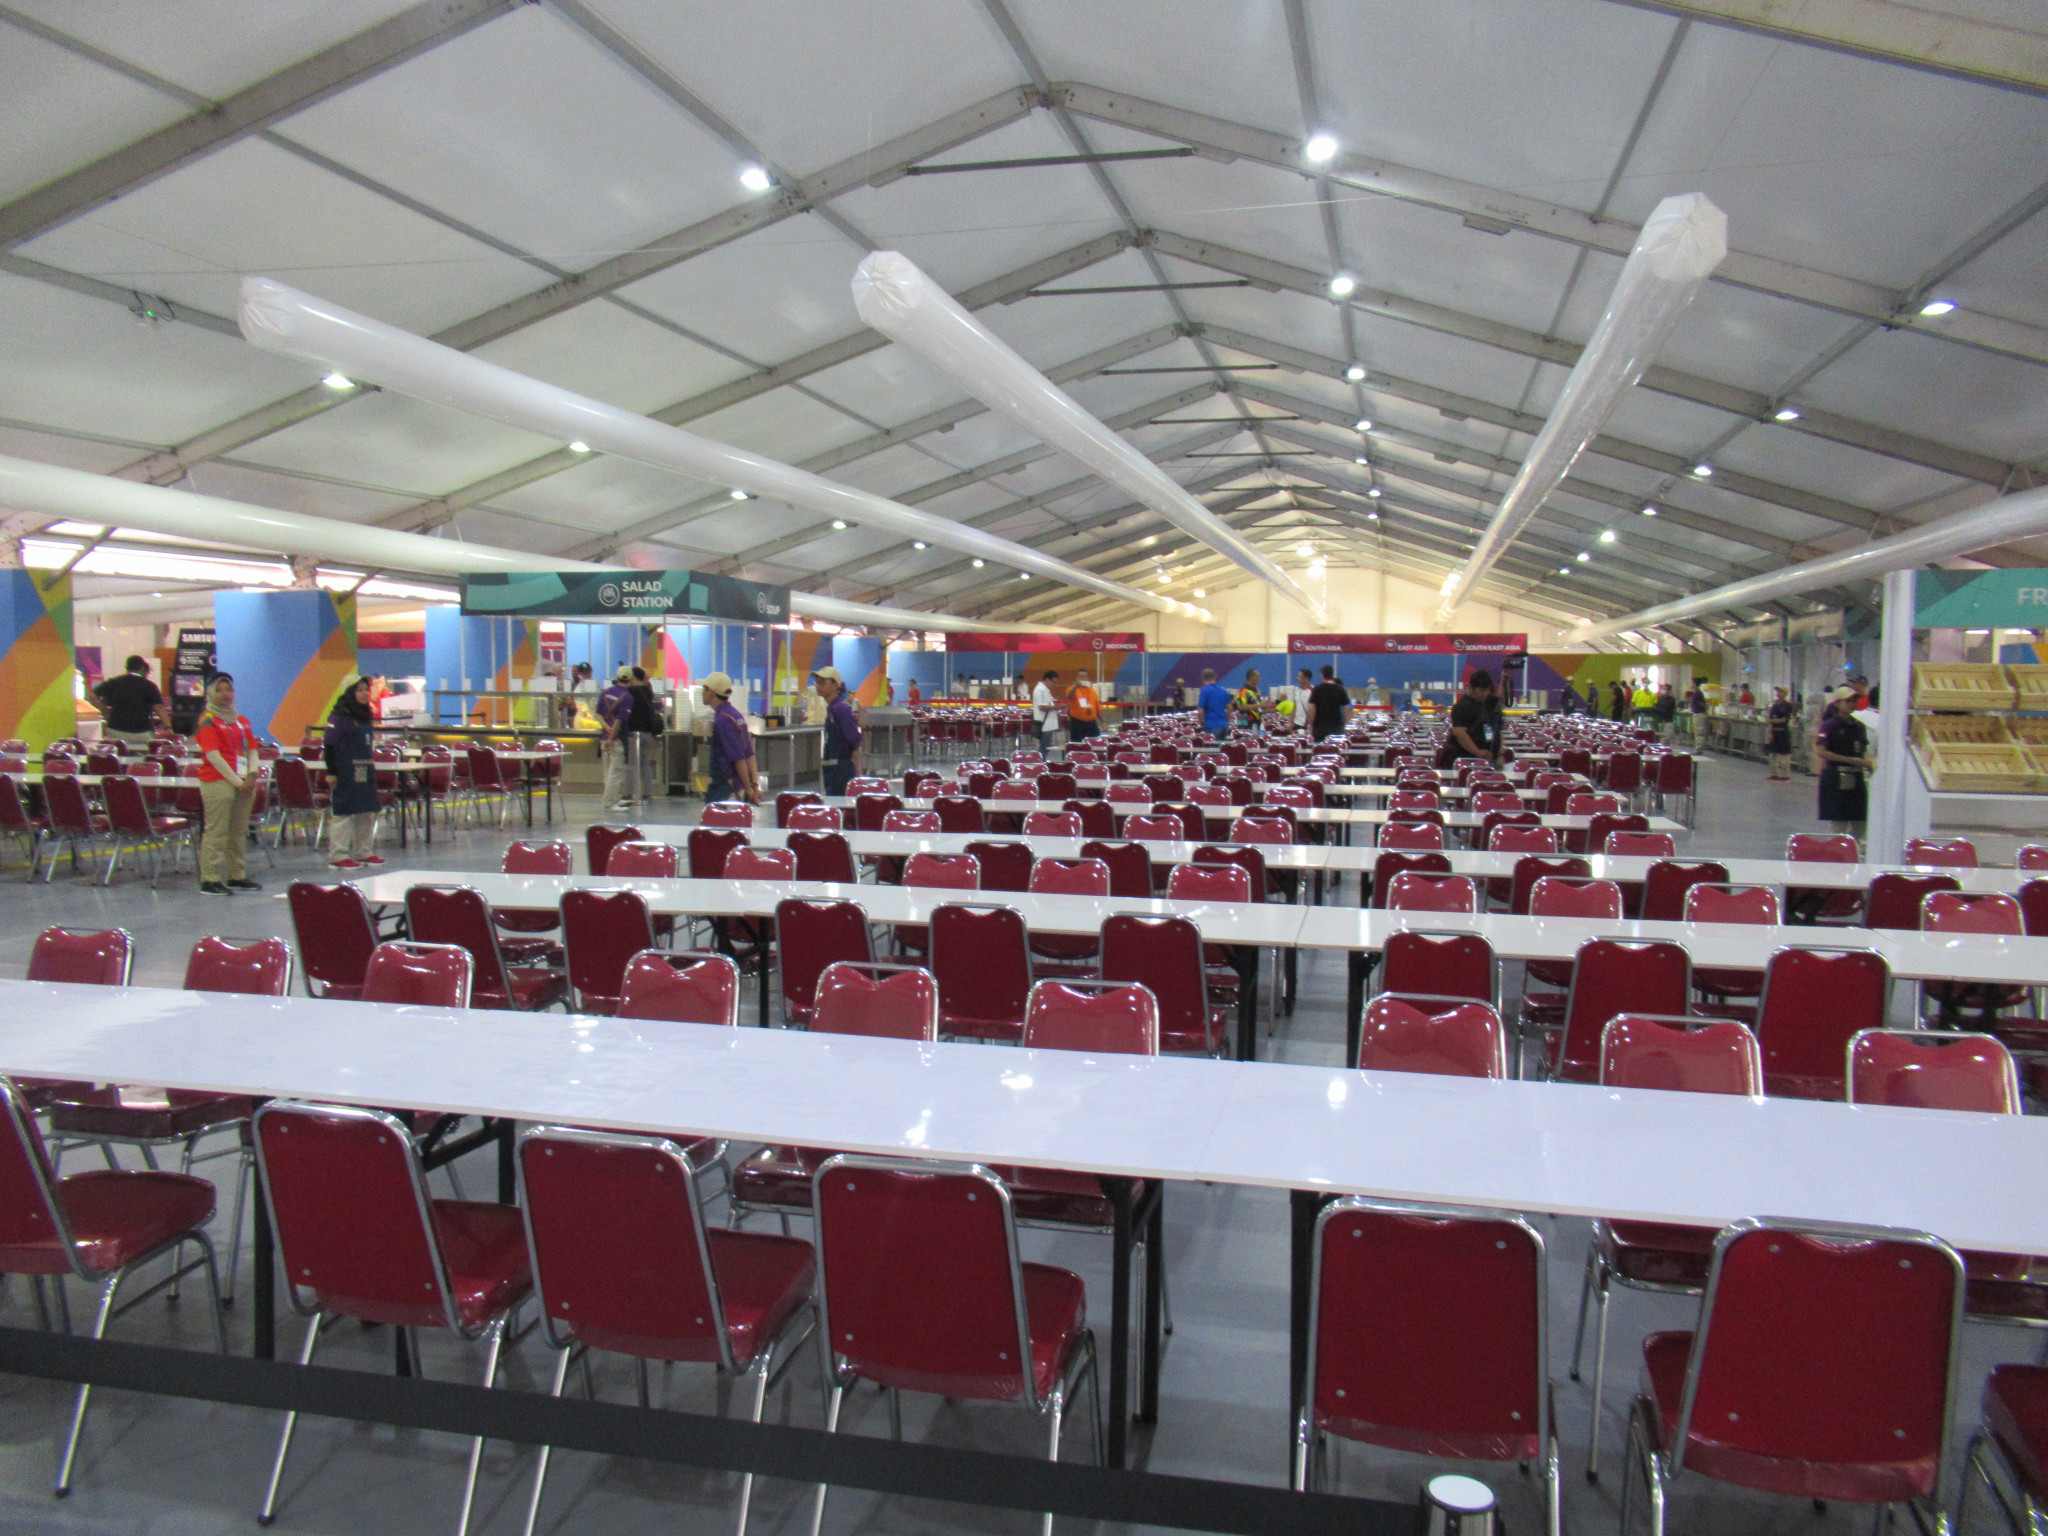 So far, 12 countries have checked into the Athletes' Village for Jakarta Palembang 2018 ©OCA